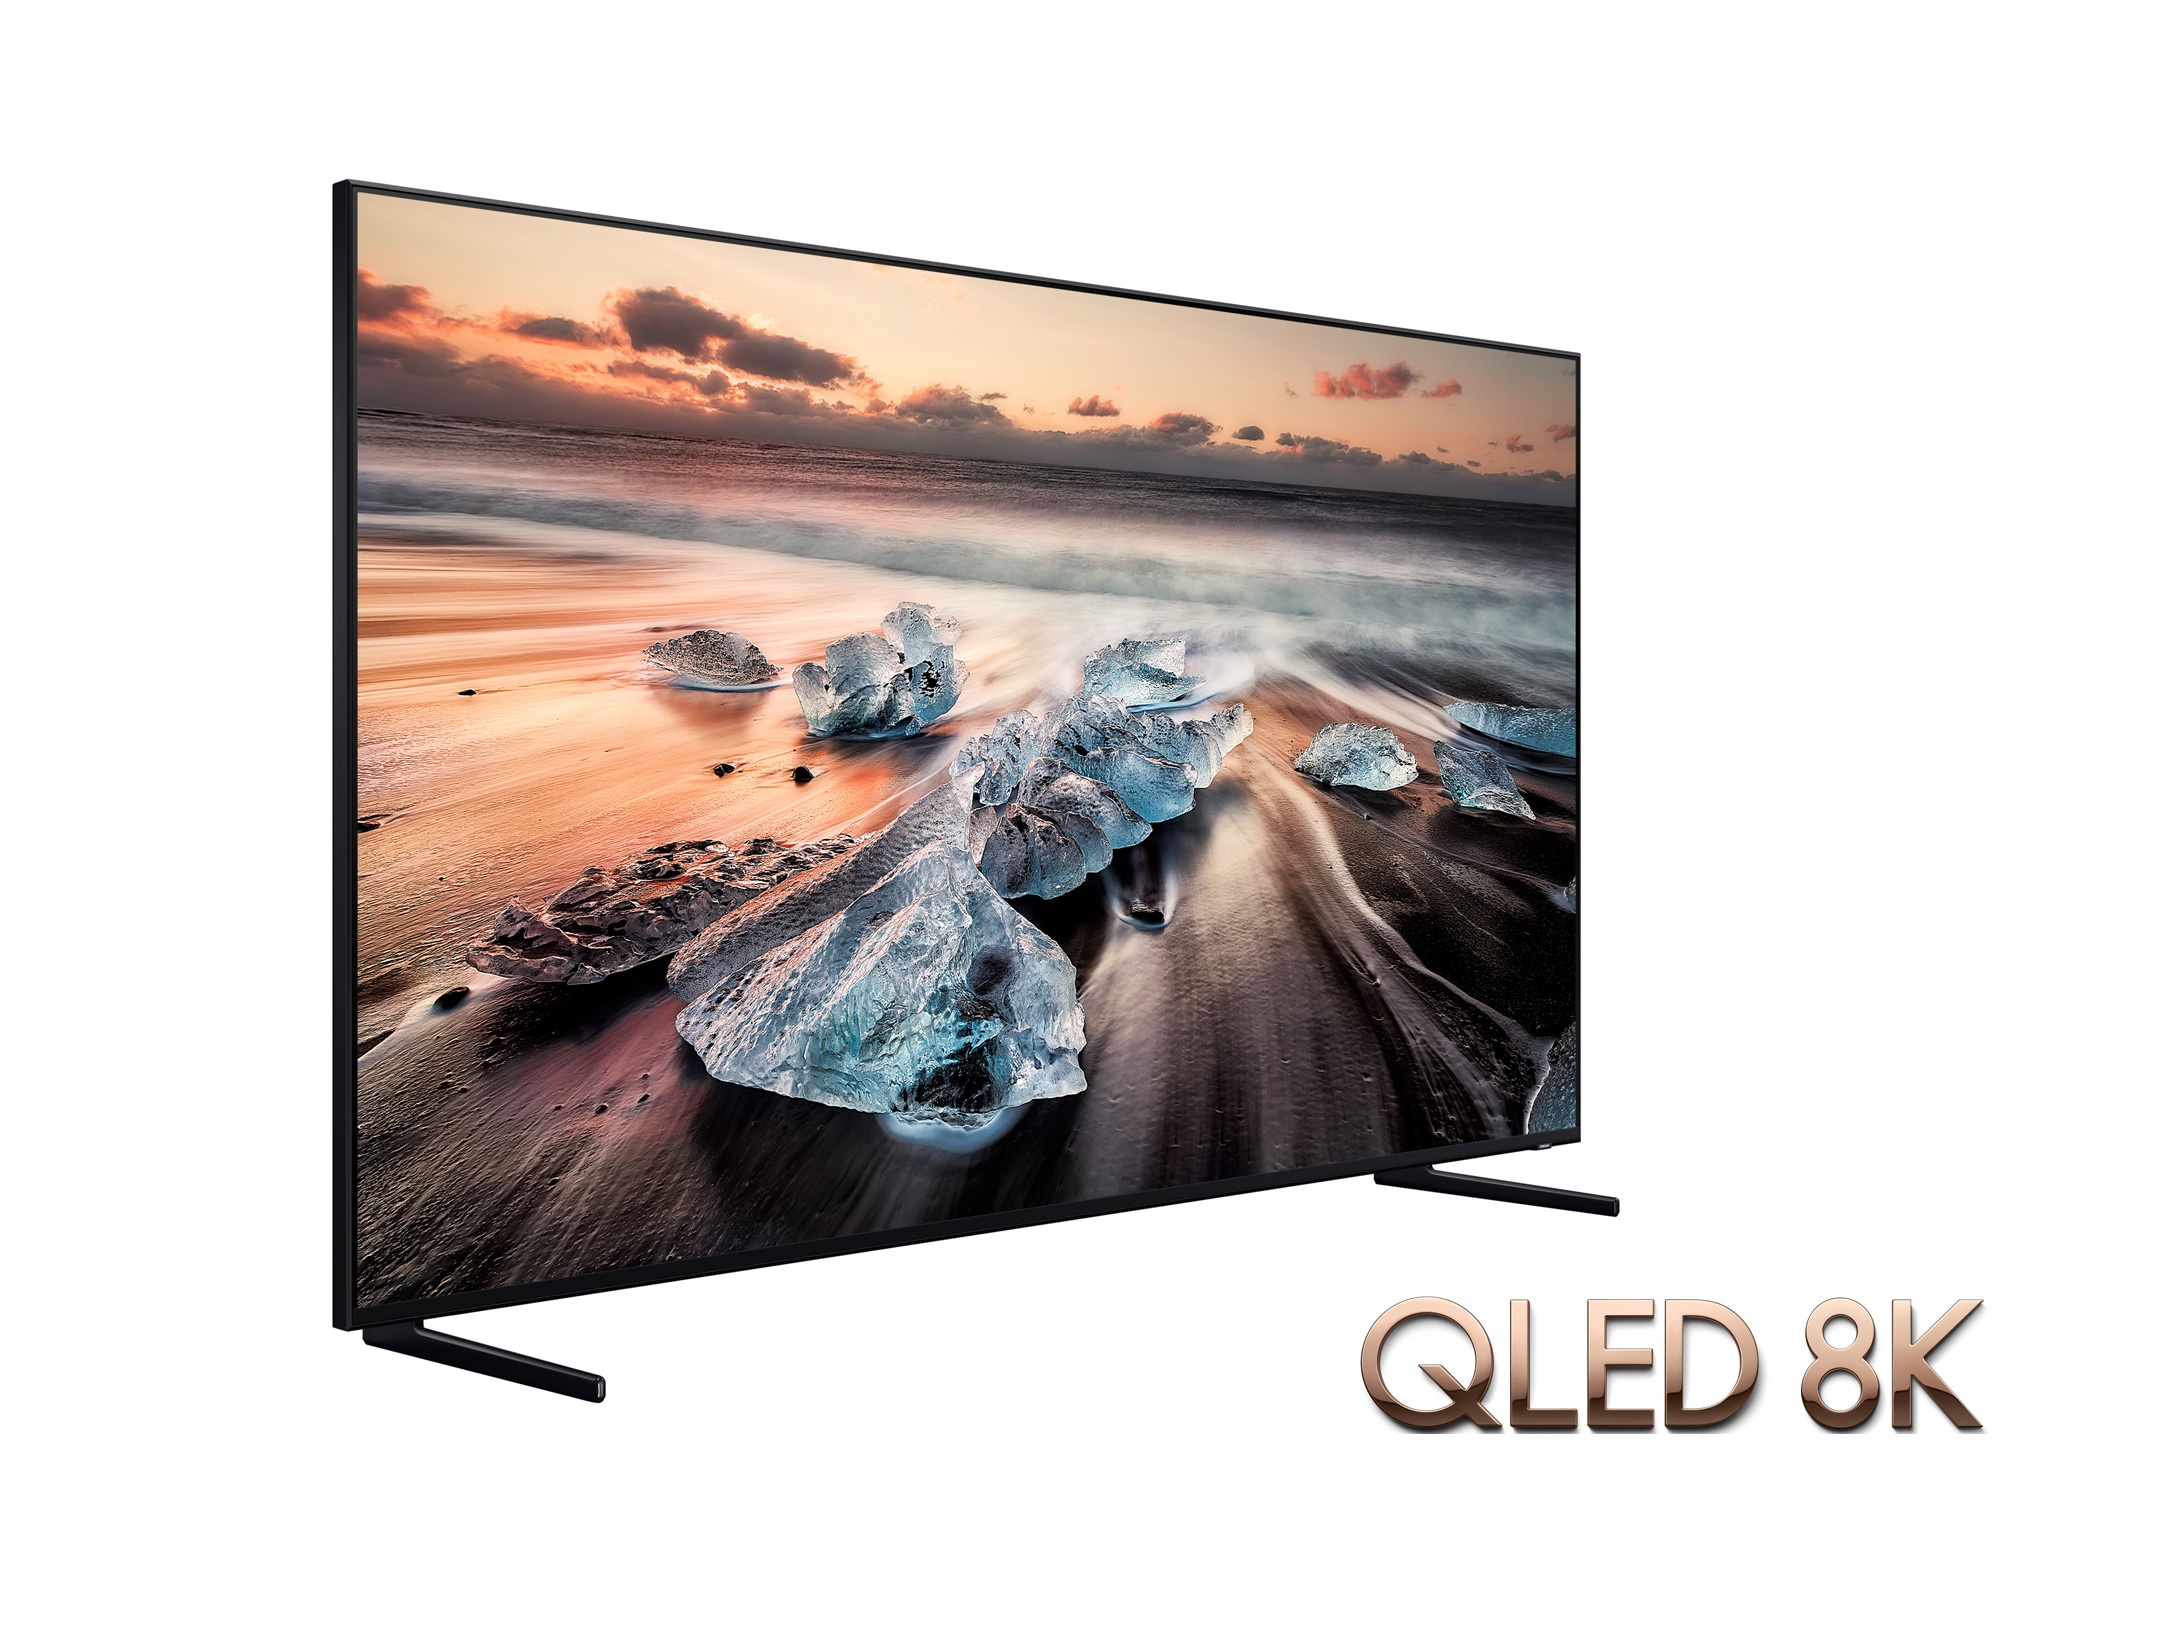 ces 2019 video samsung qled 8k tv mit 82 zoll im hands on. Black Bedroom Furniture Sets. Home Design Ideas